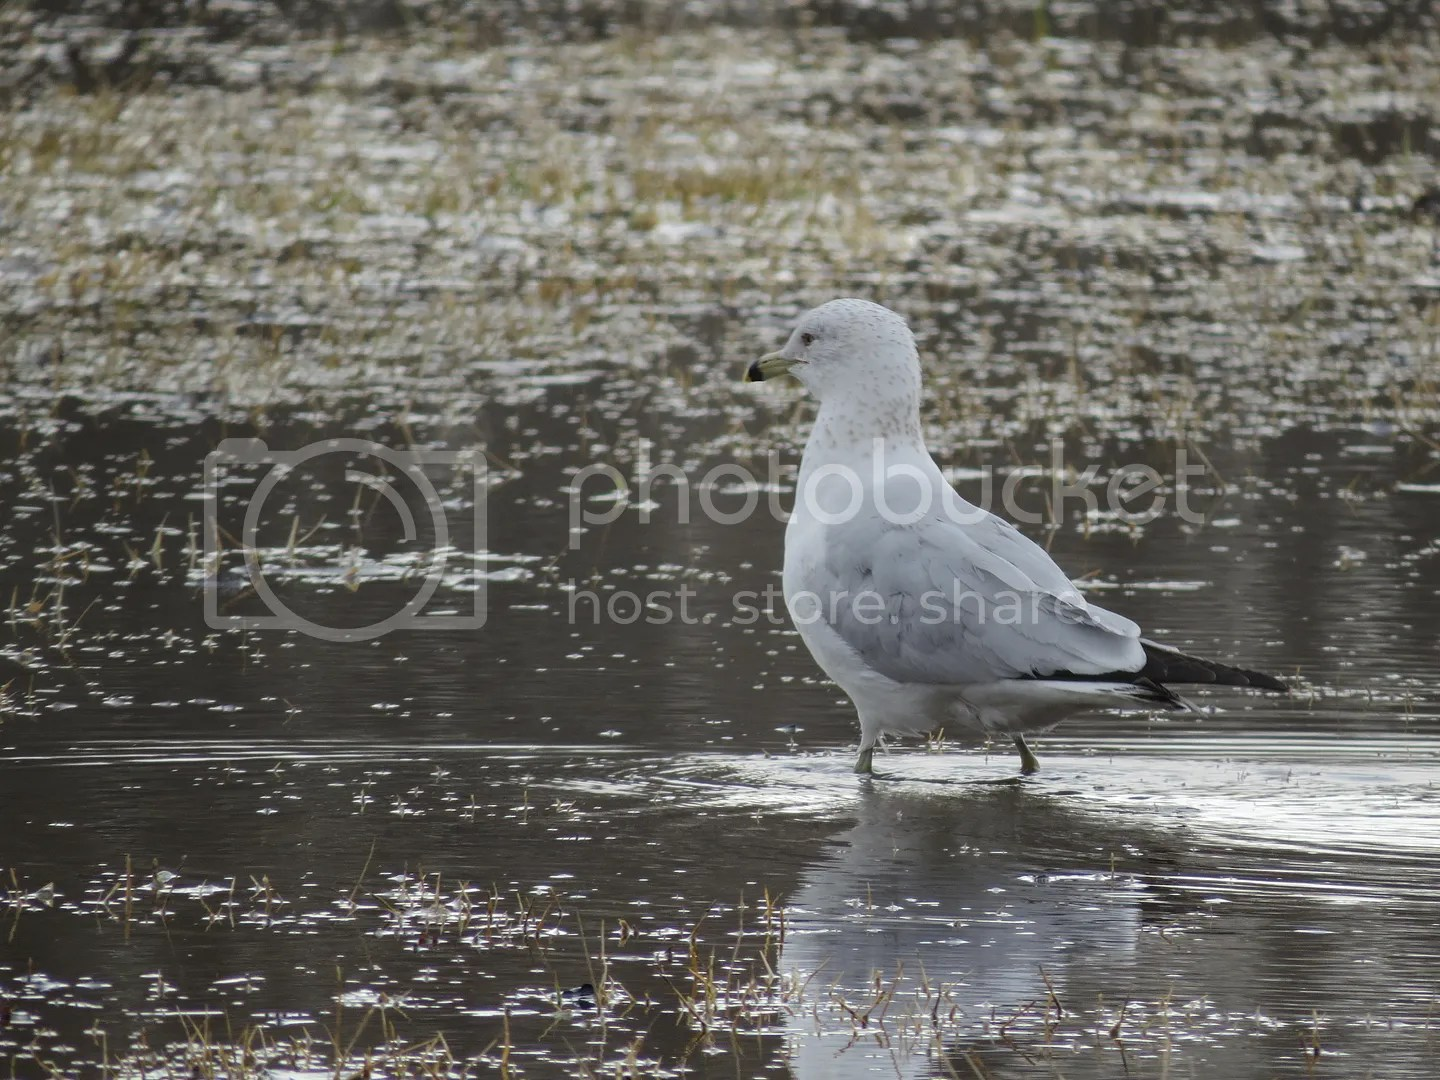 River Raisin Ice Jam 2015 - Gull in the Outfield photo Gull in the Watery Outfield_zpsn4jvwr1p.jpg